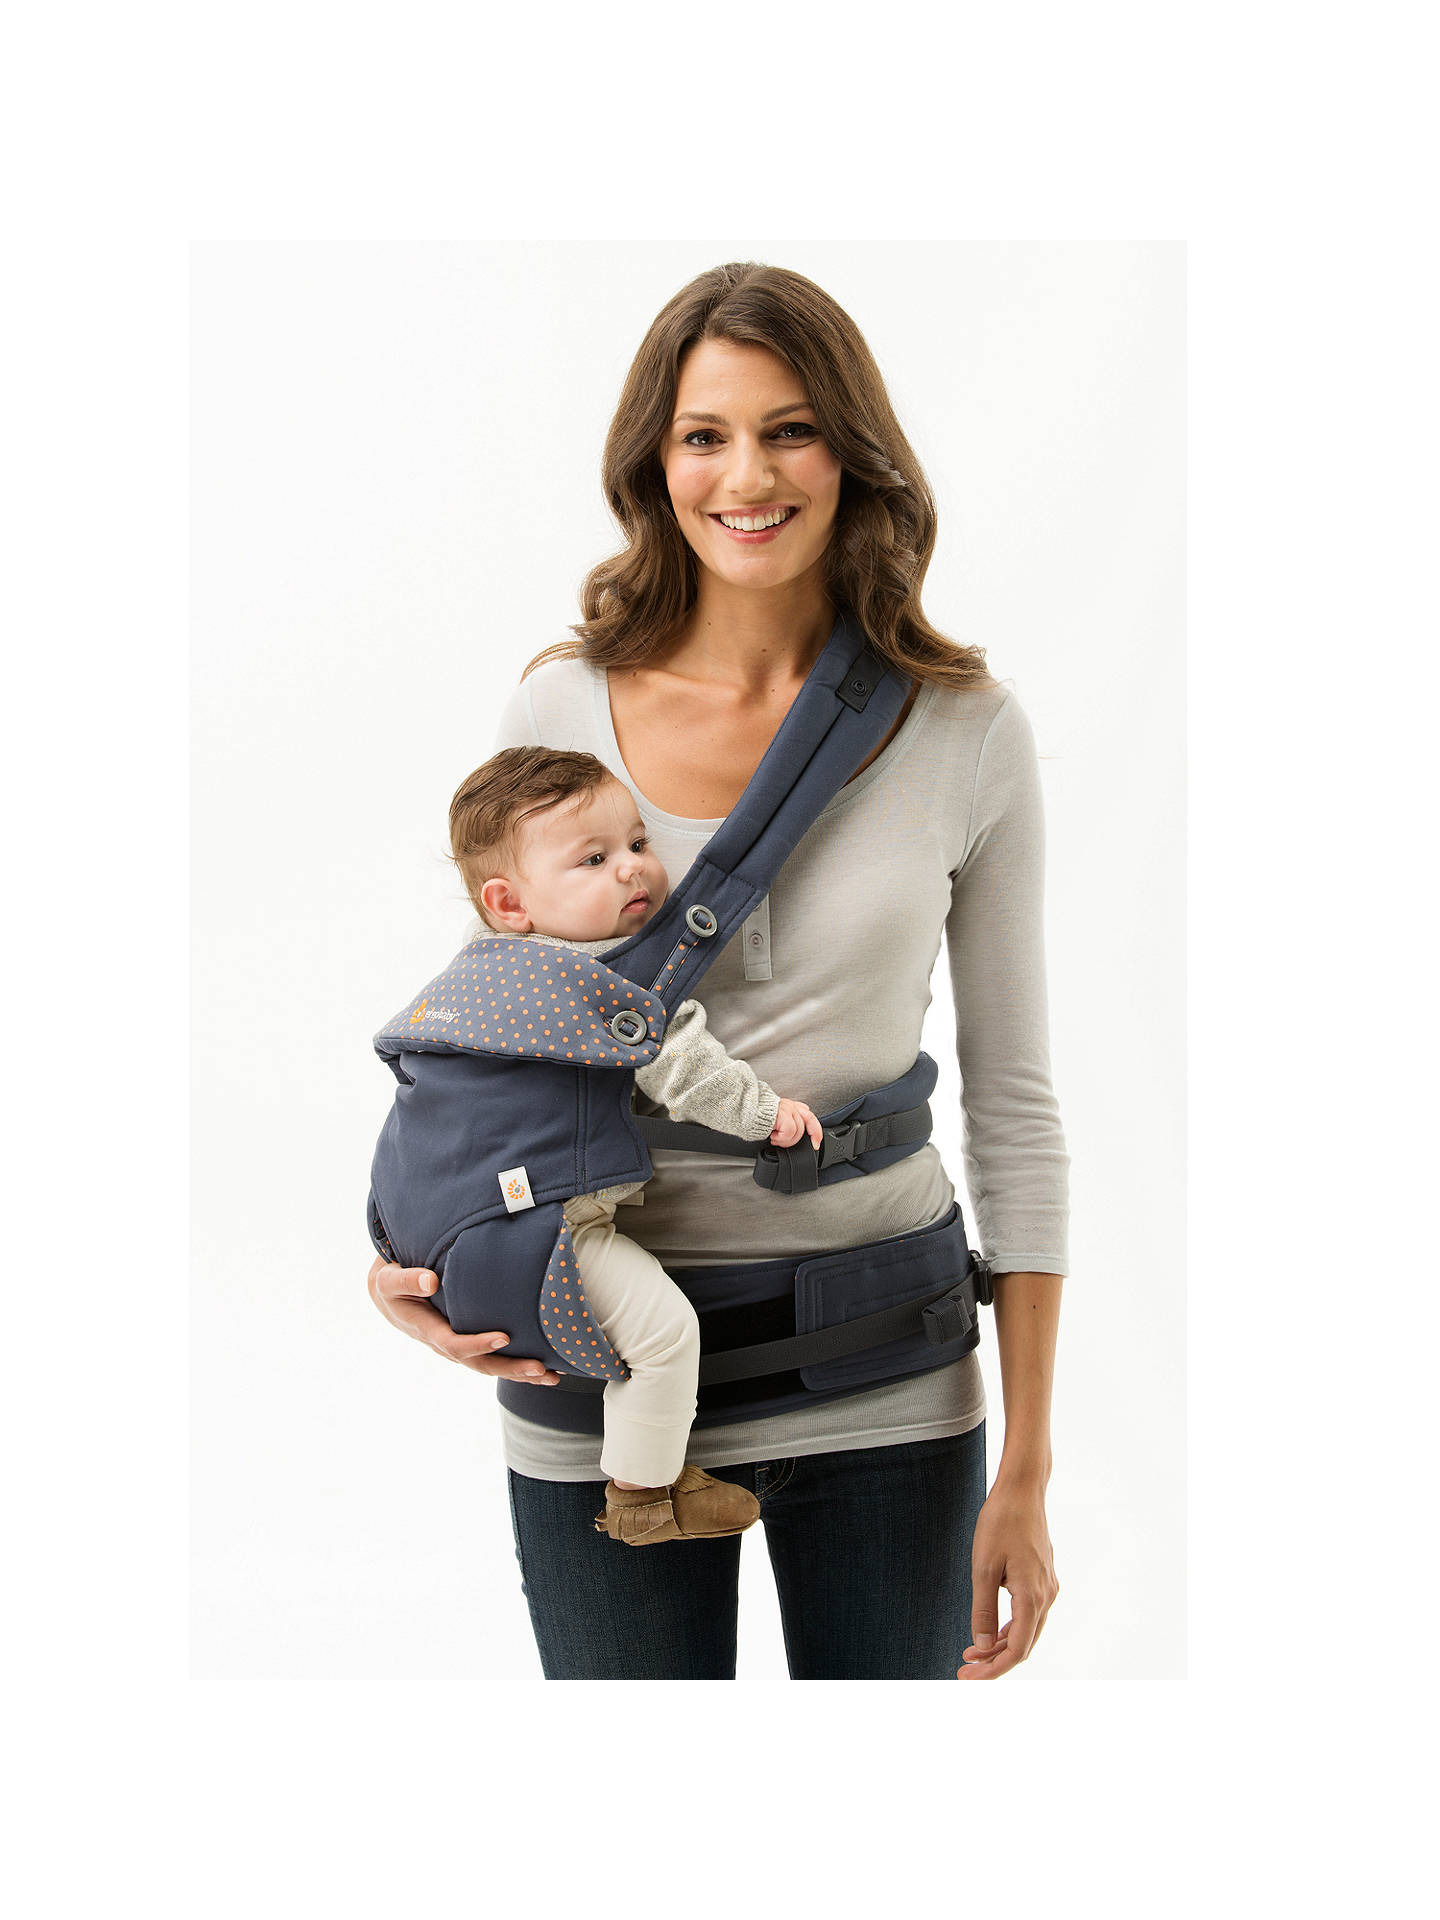 31d8ea79241 ... Buy Ergobaby Four Position 360 Baby Carrier